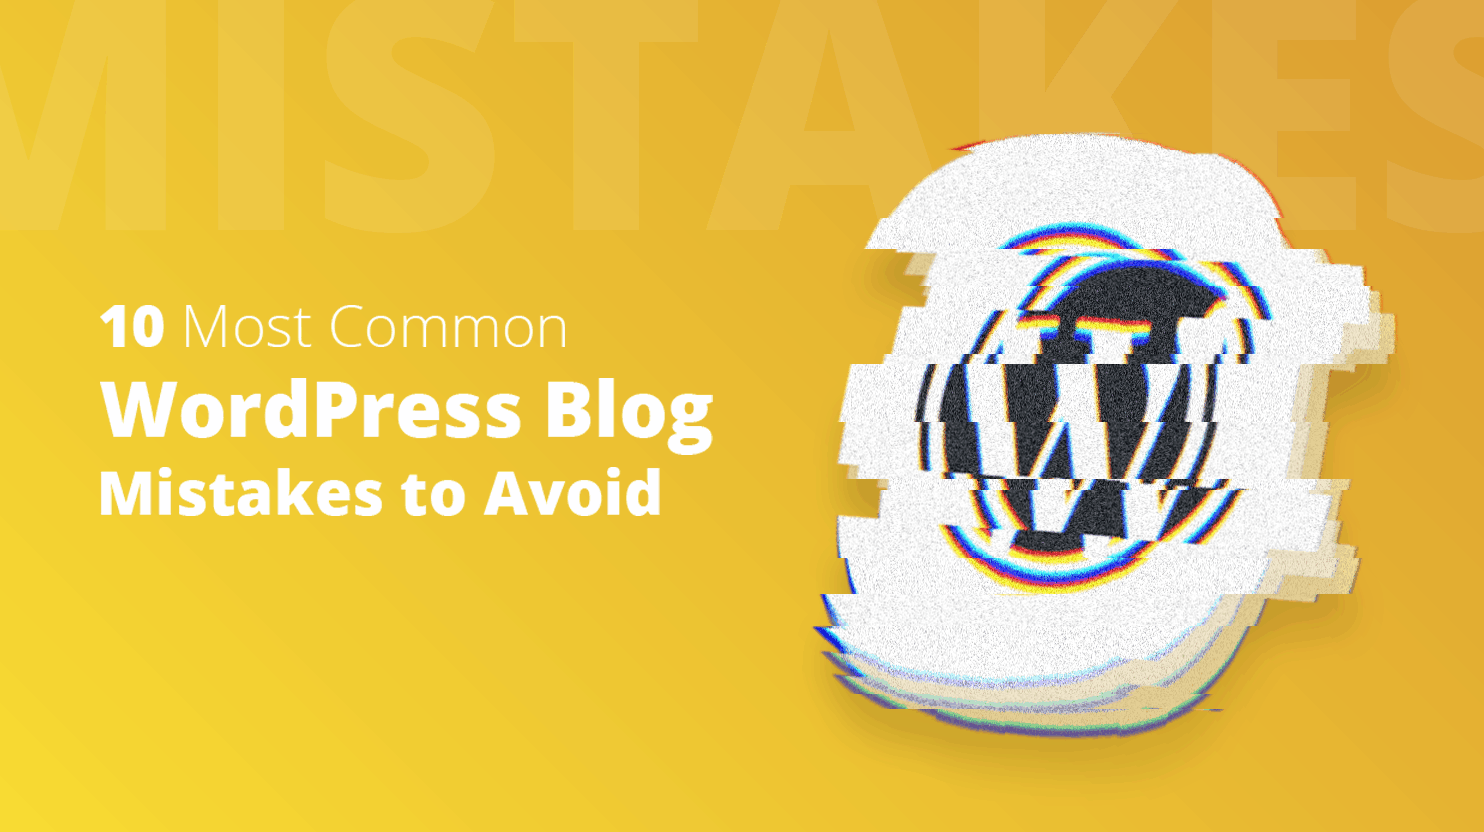 10 Most Common WordPress Blog Mistakes to Avoid